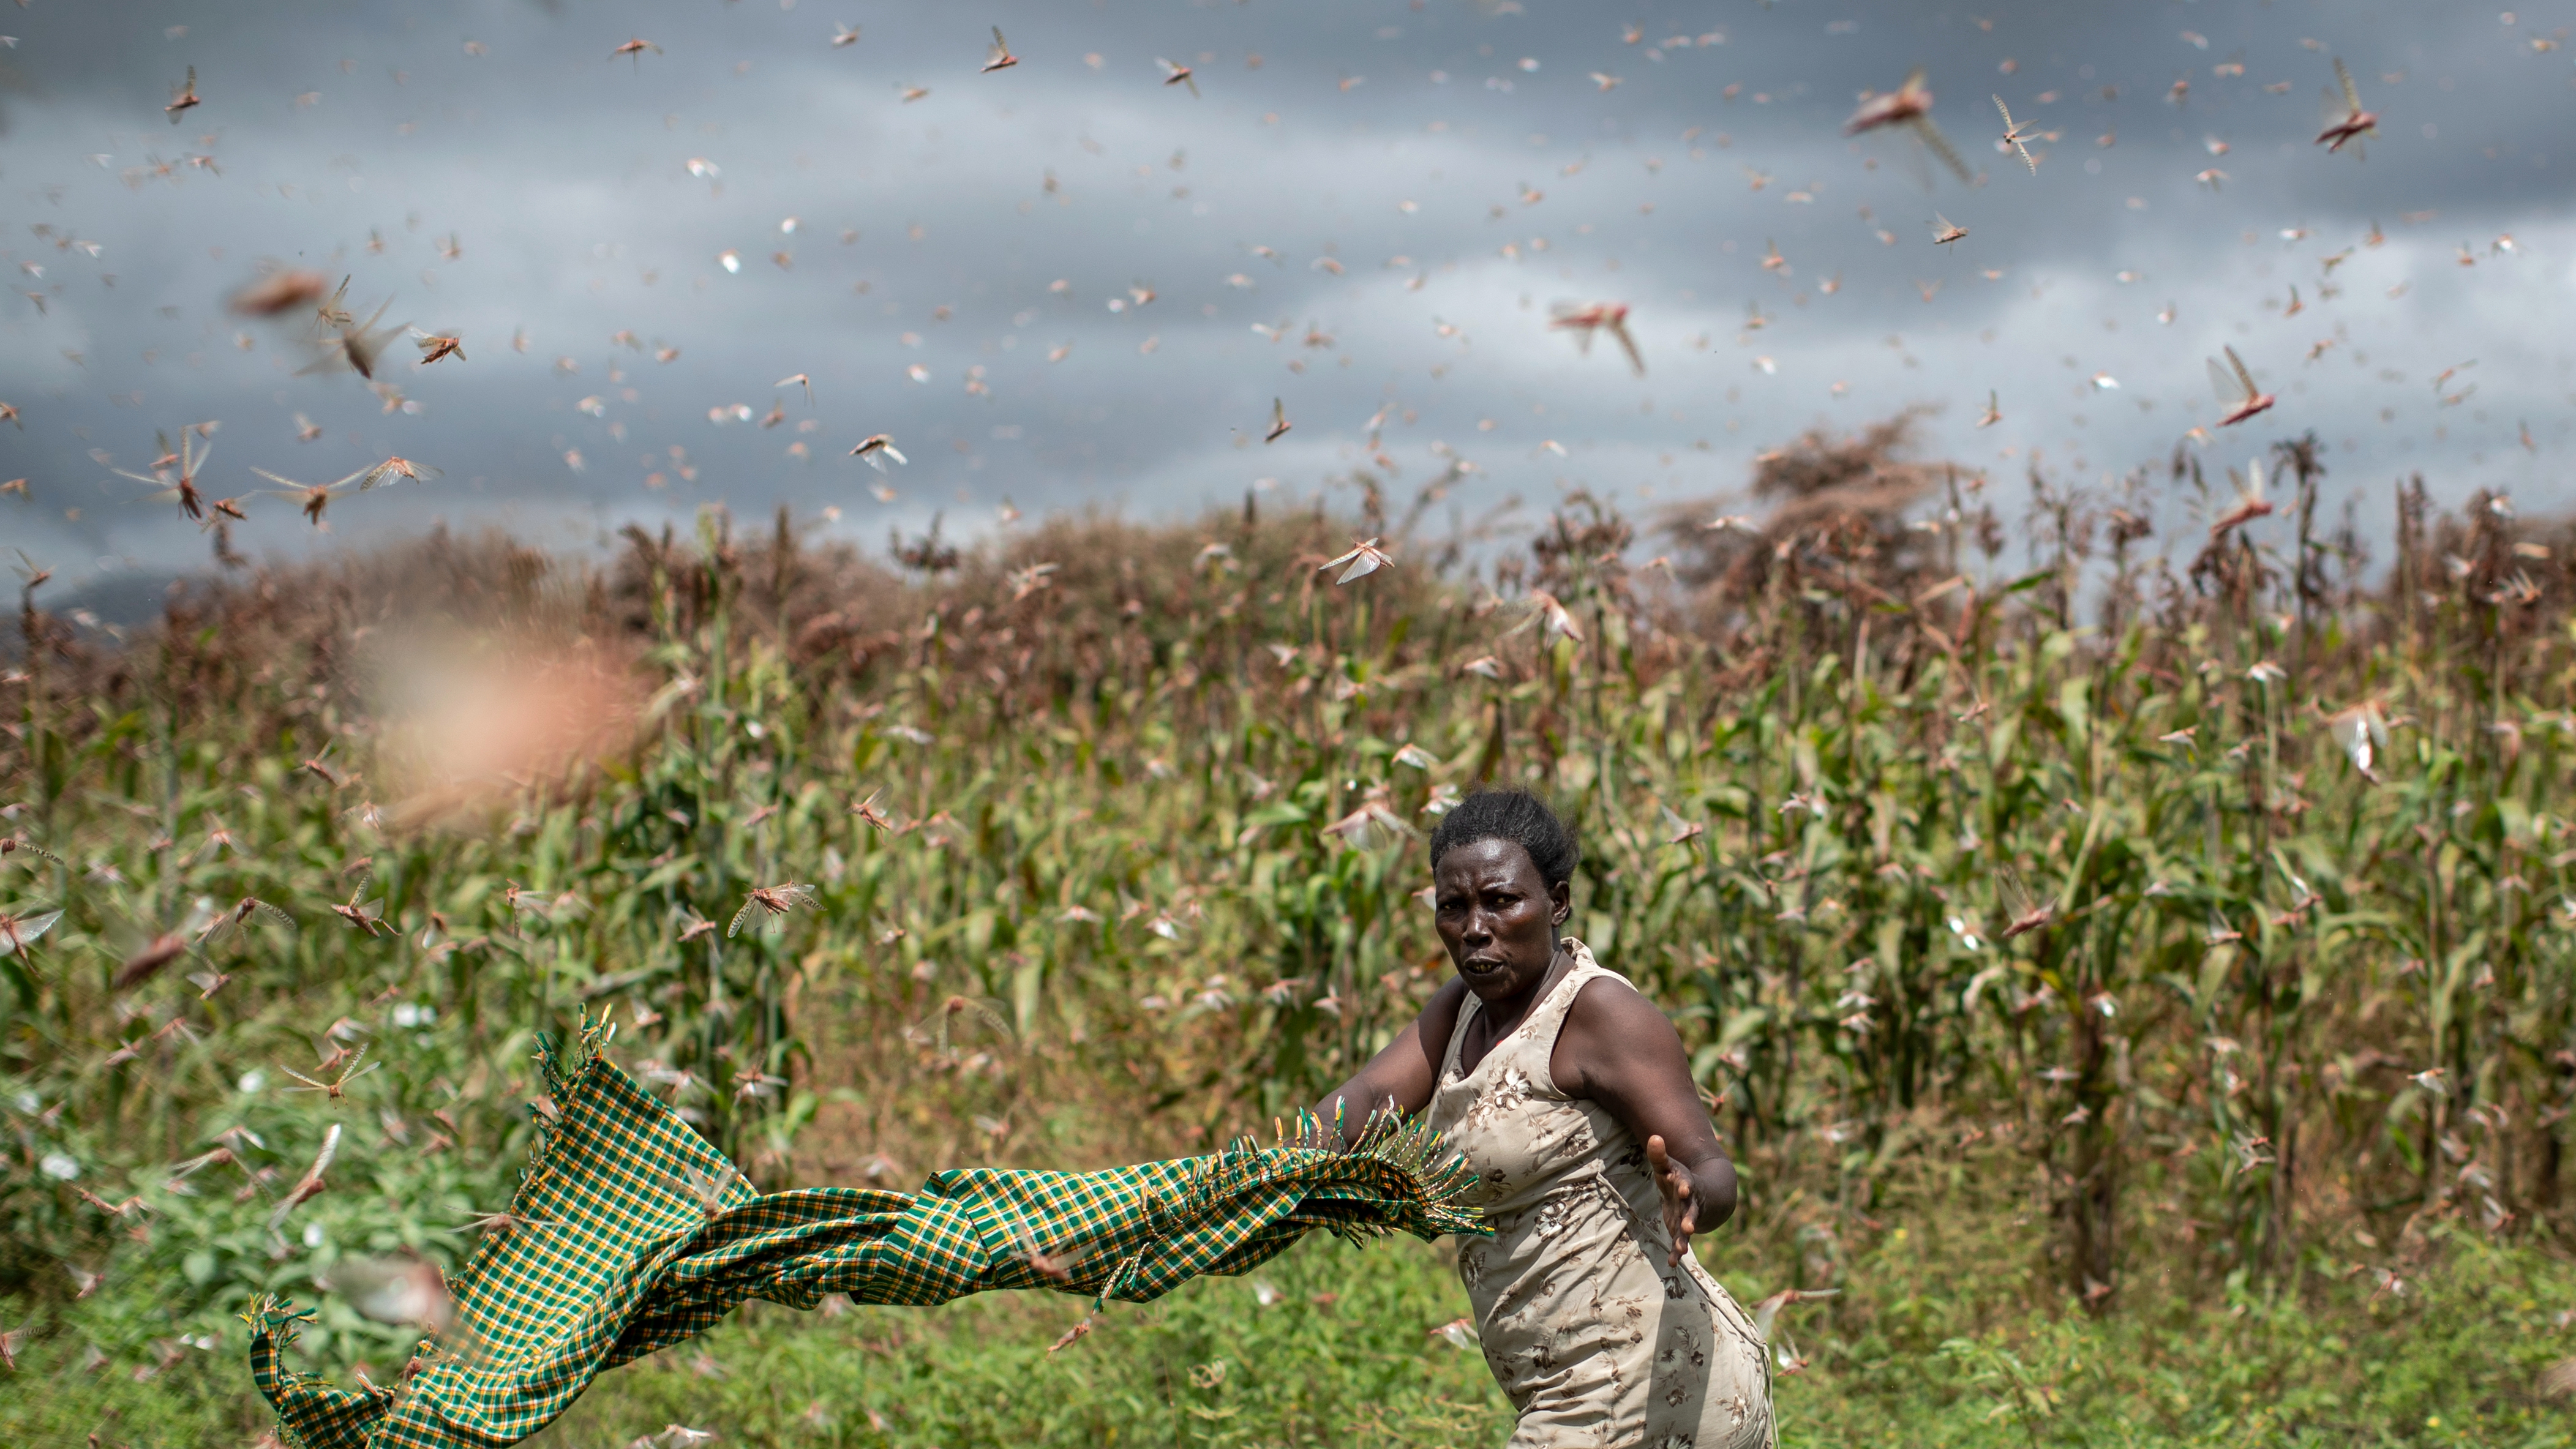 A system to monitor air pollution is helping track locust swarms ...